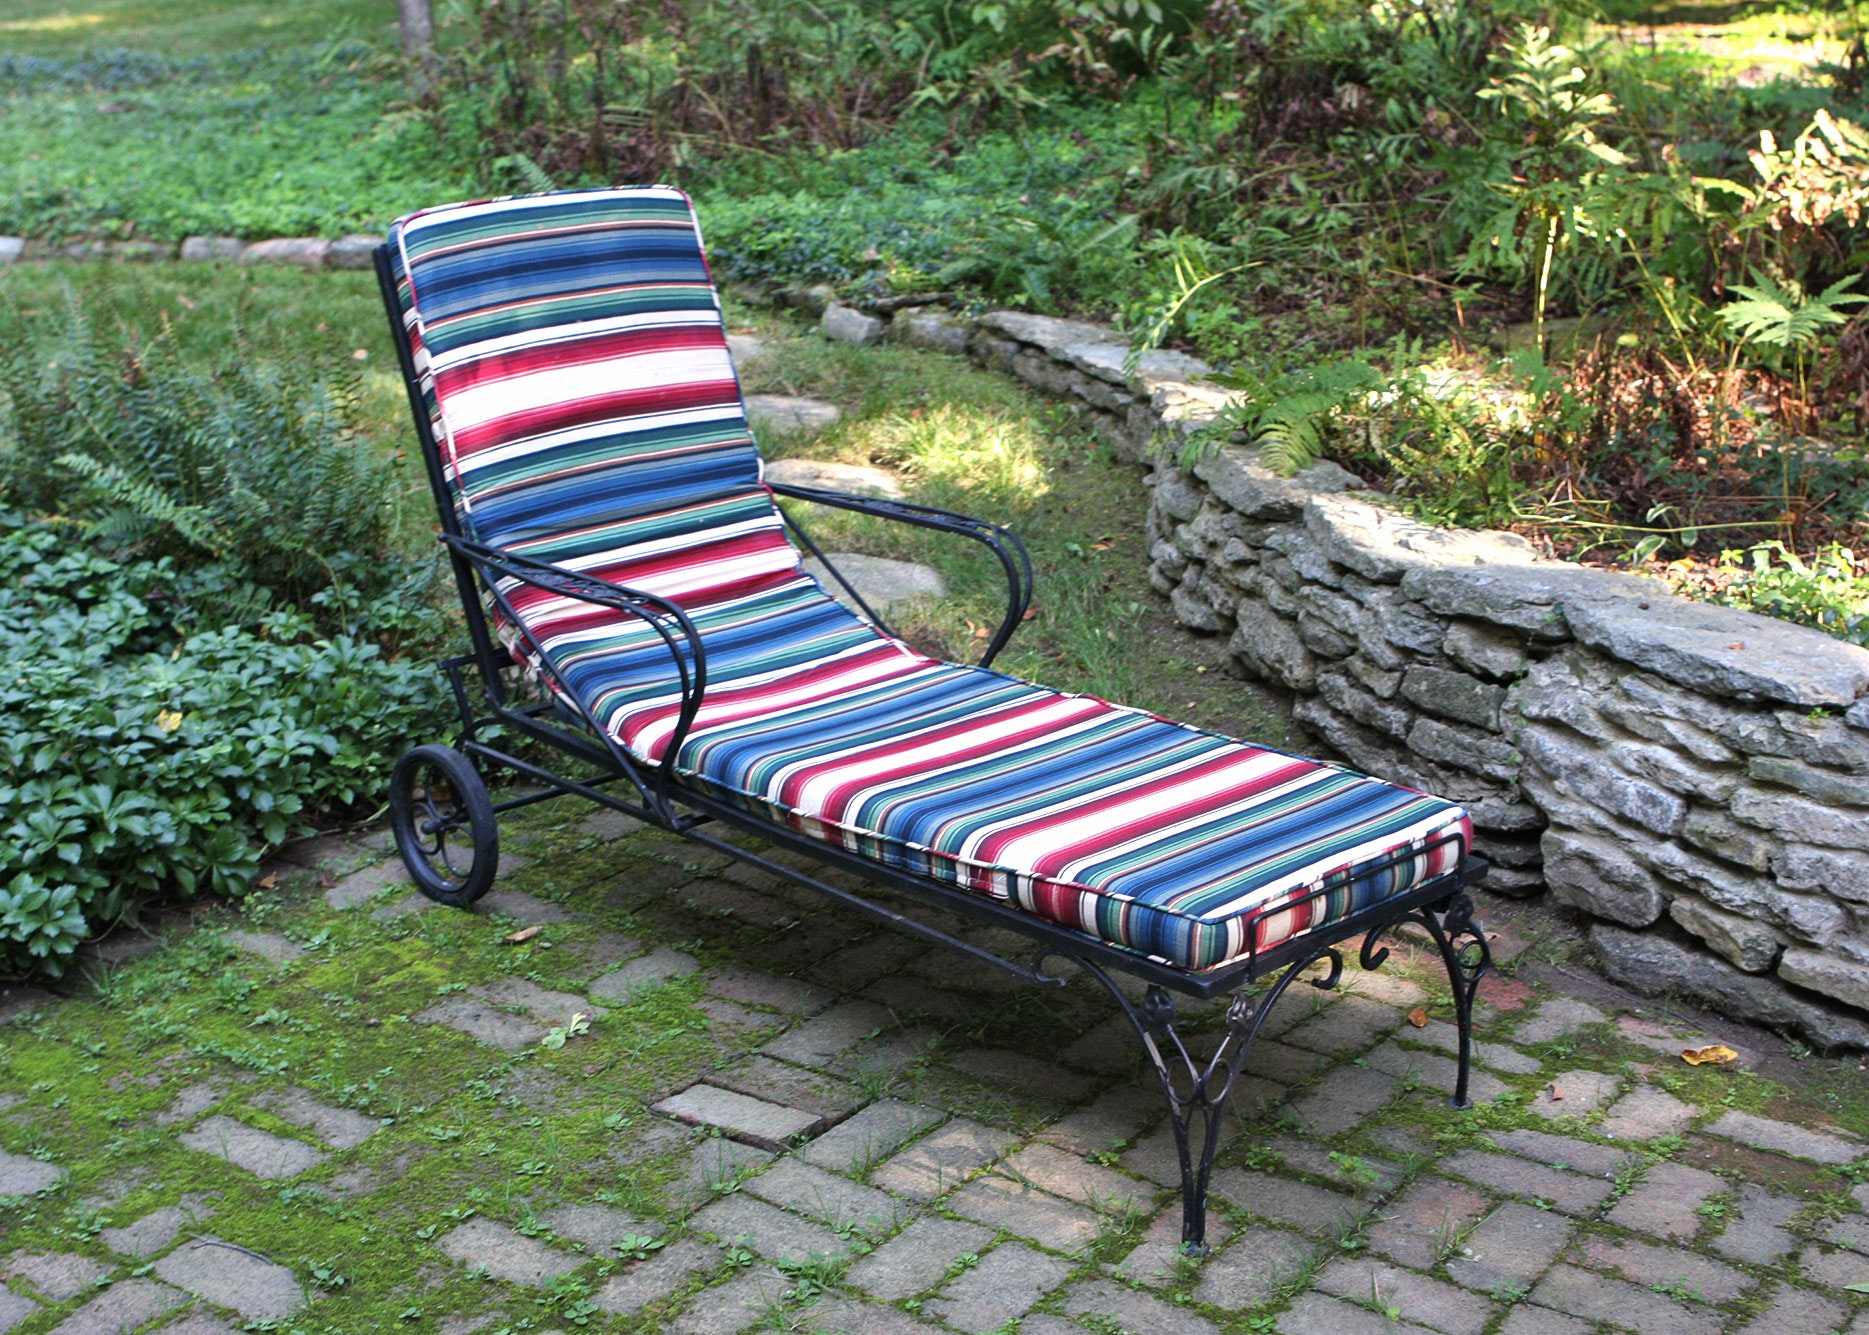 Painted Wrought Iron Outdoor Chaise Lounge with Wheels ... : wrought iron chaise lounge with wheels - Sectionals, Sofas & Couches